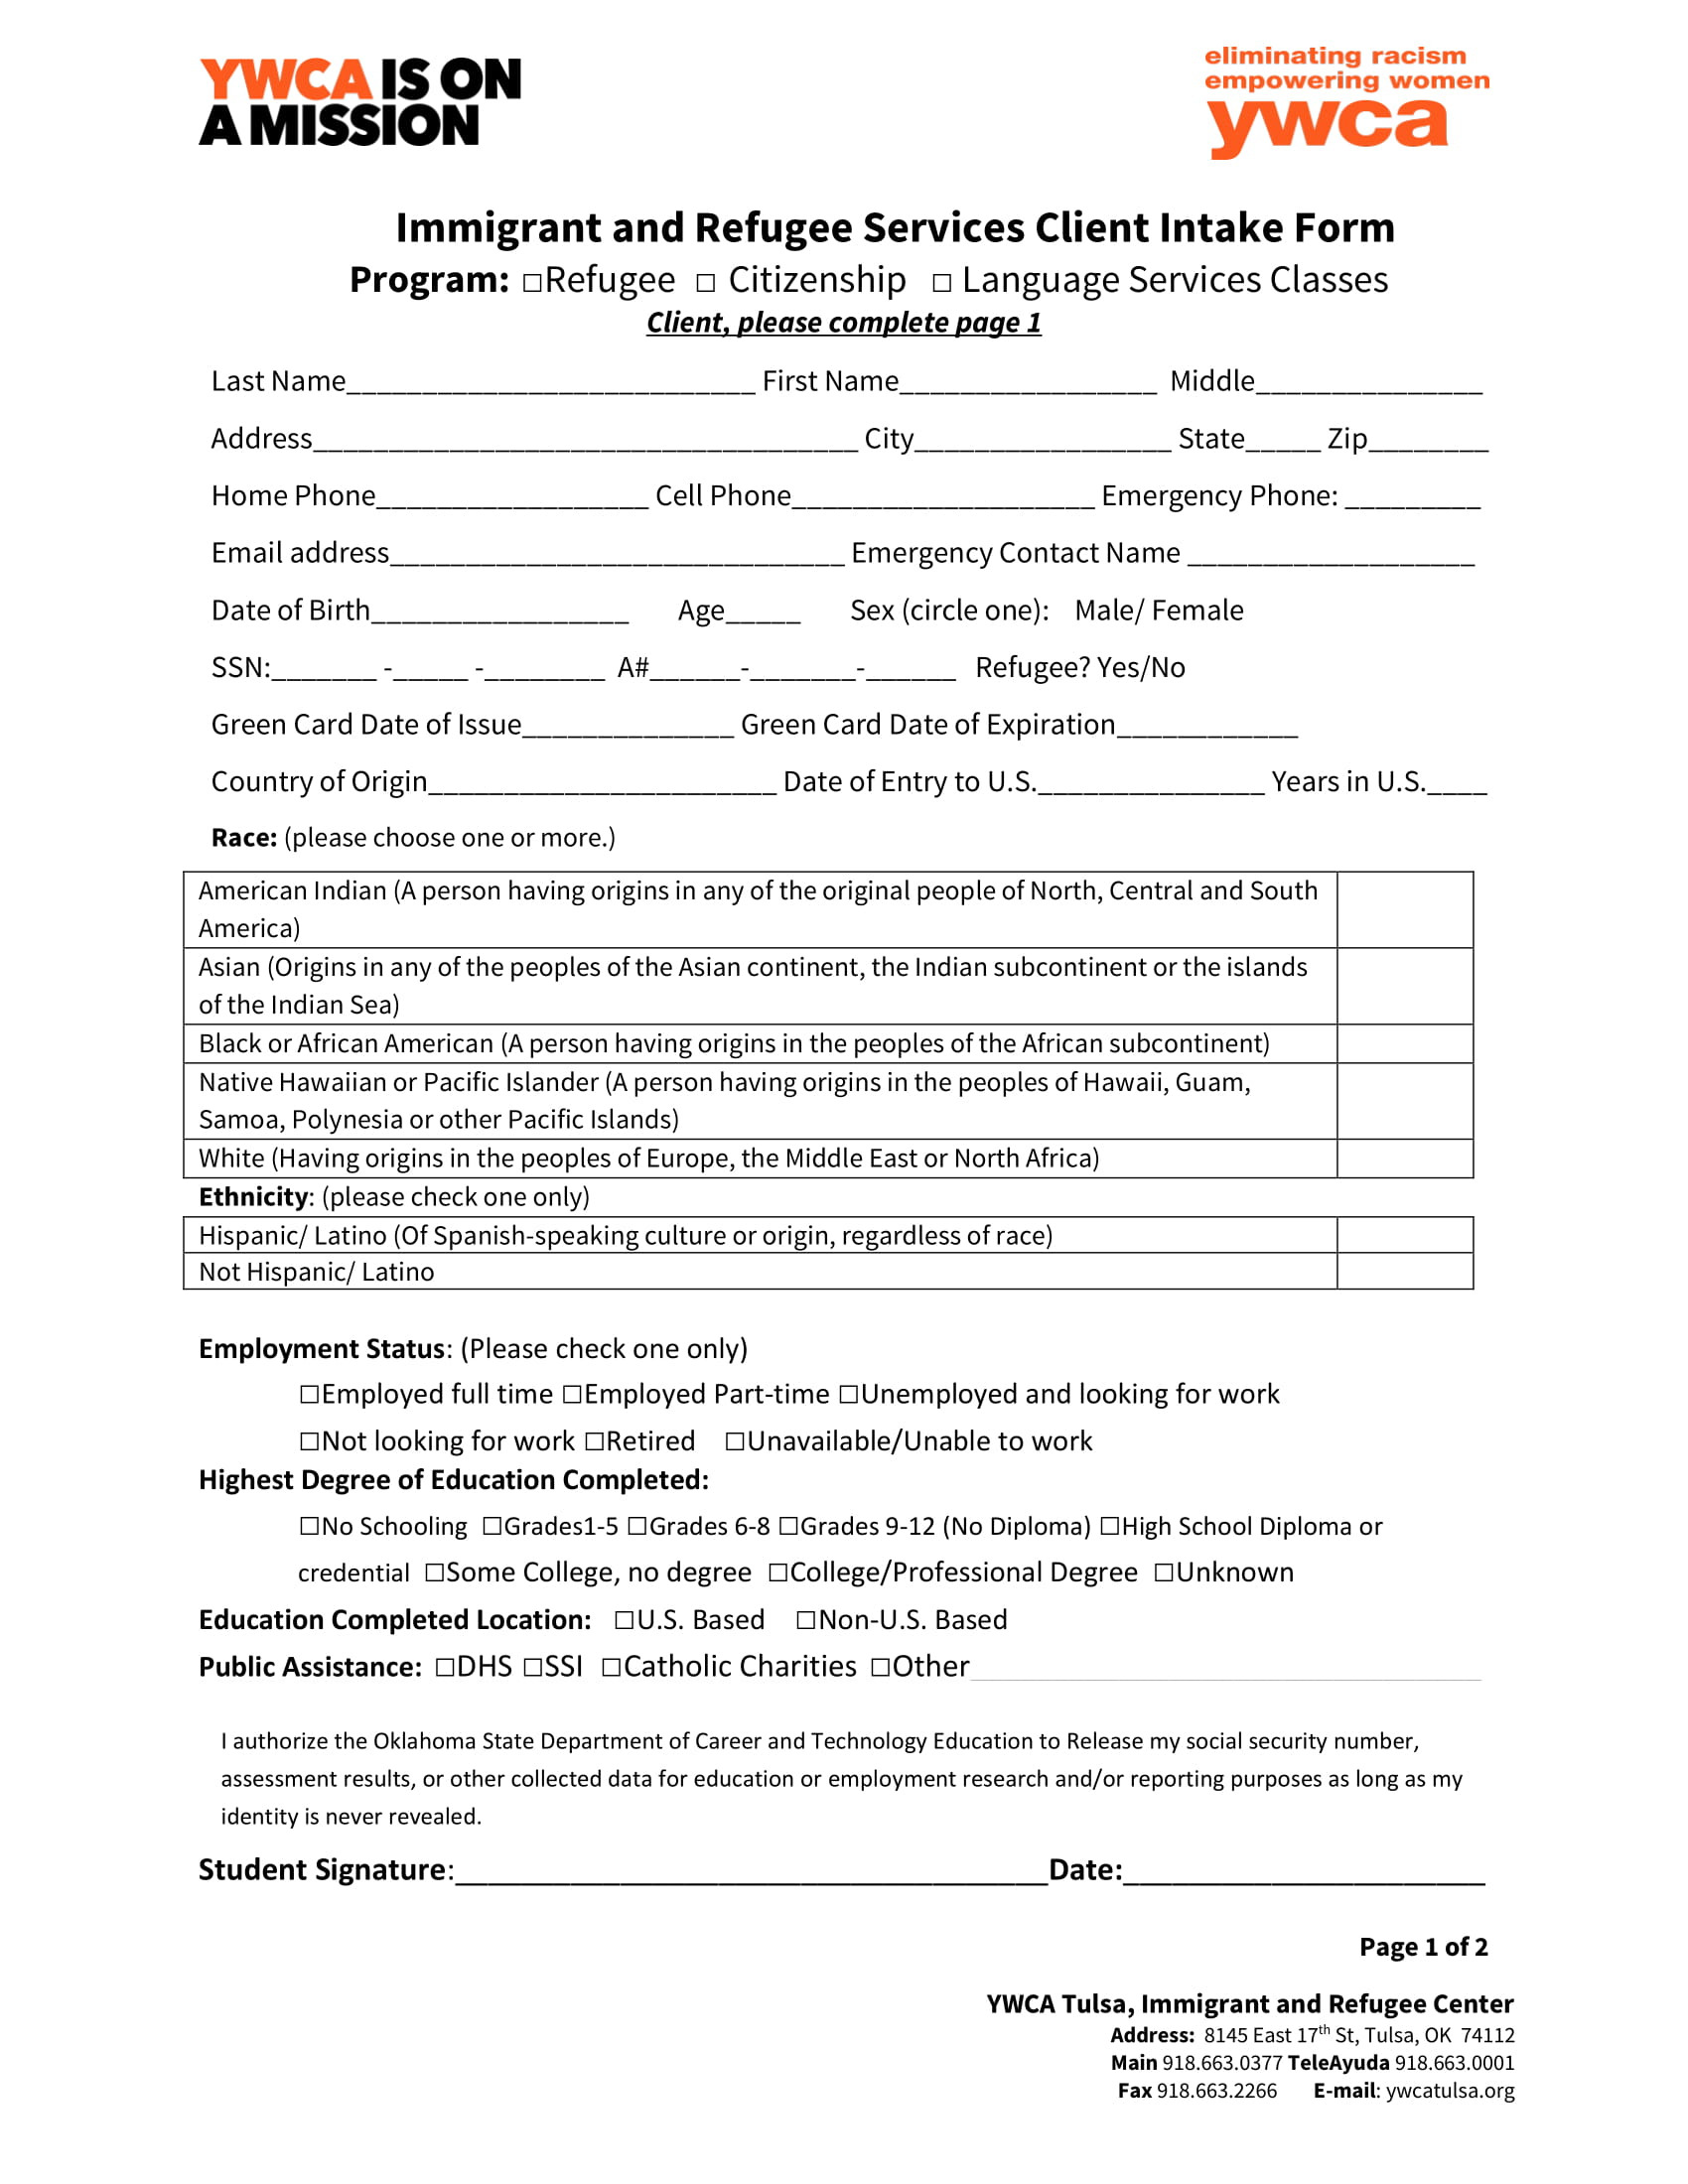 immigrant services client intake form 1